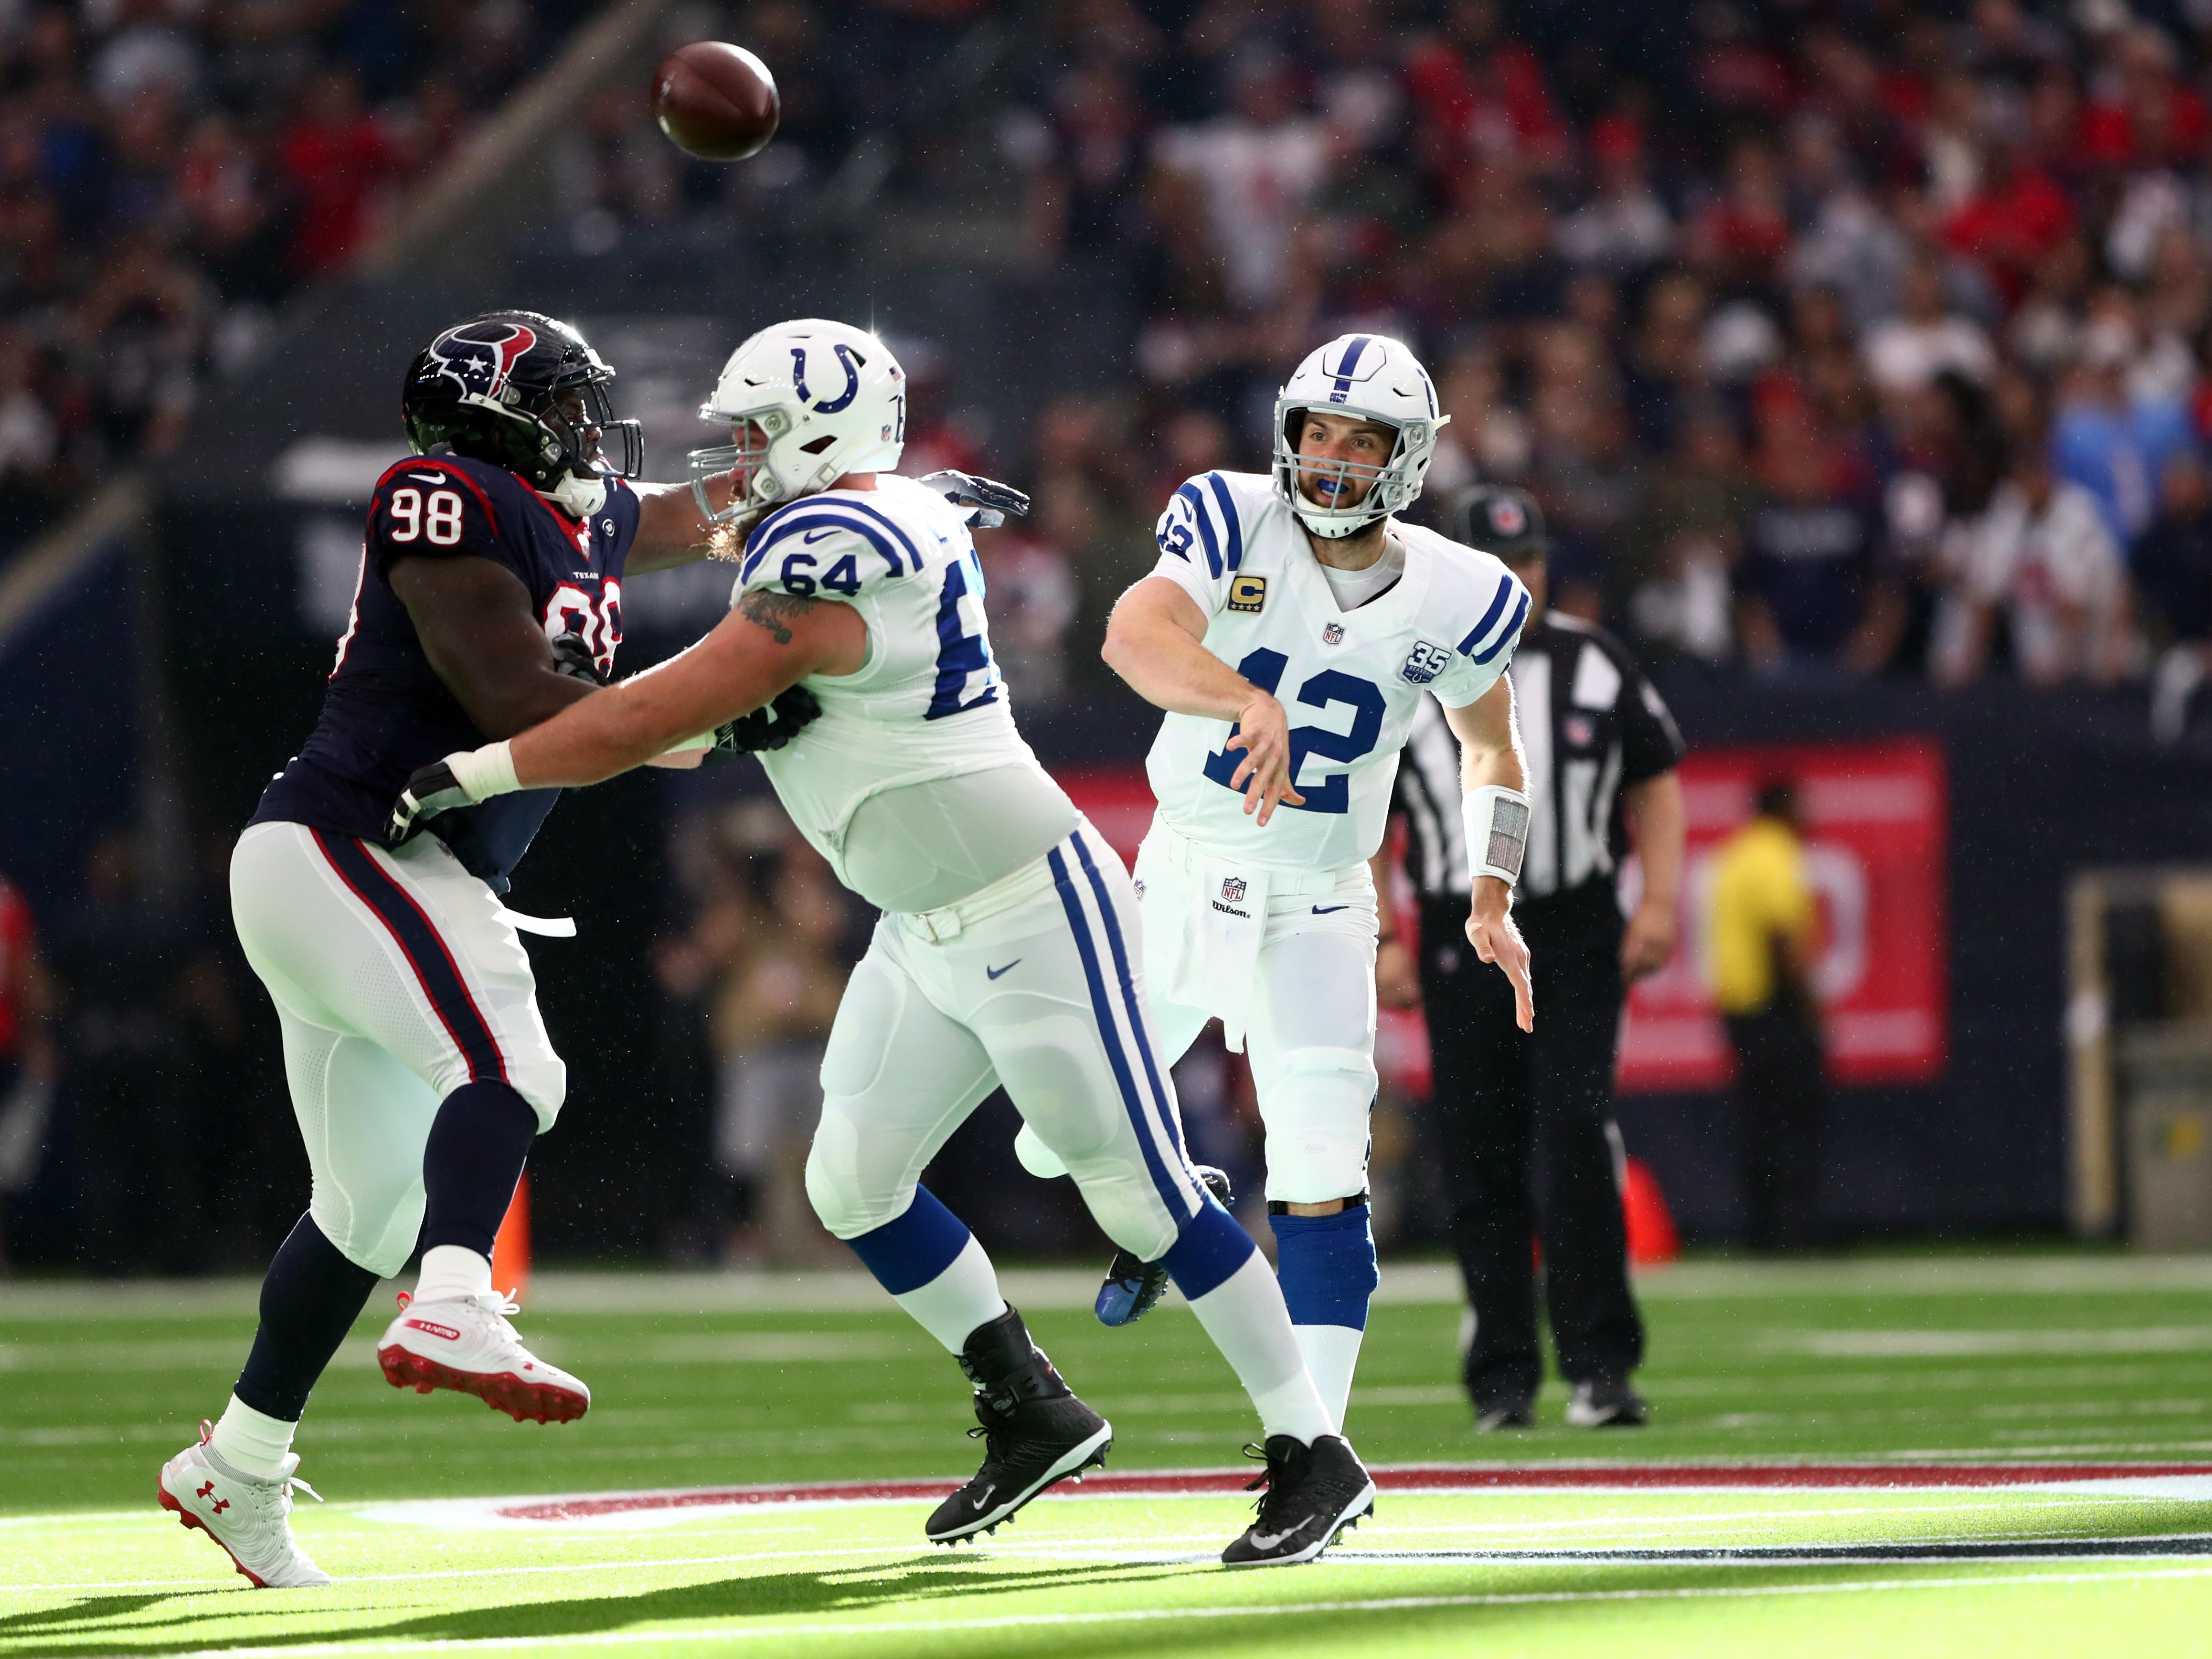 Indianapolis Colts quarterback Andrew Luck (12) throws a pass against the Houston Texans in the first quarter in a AFC Wild Card playoff football game at NRG Stadium.